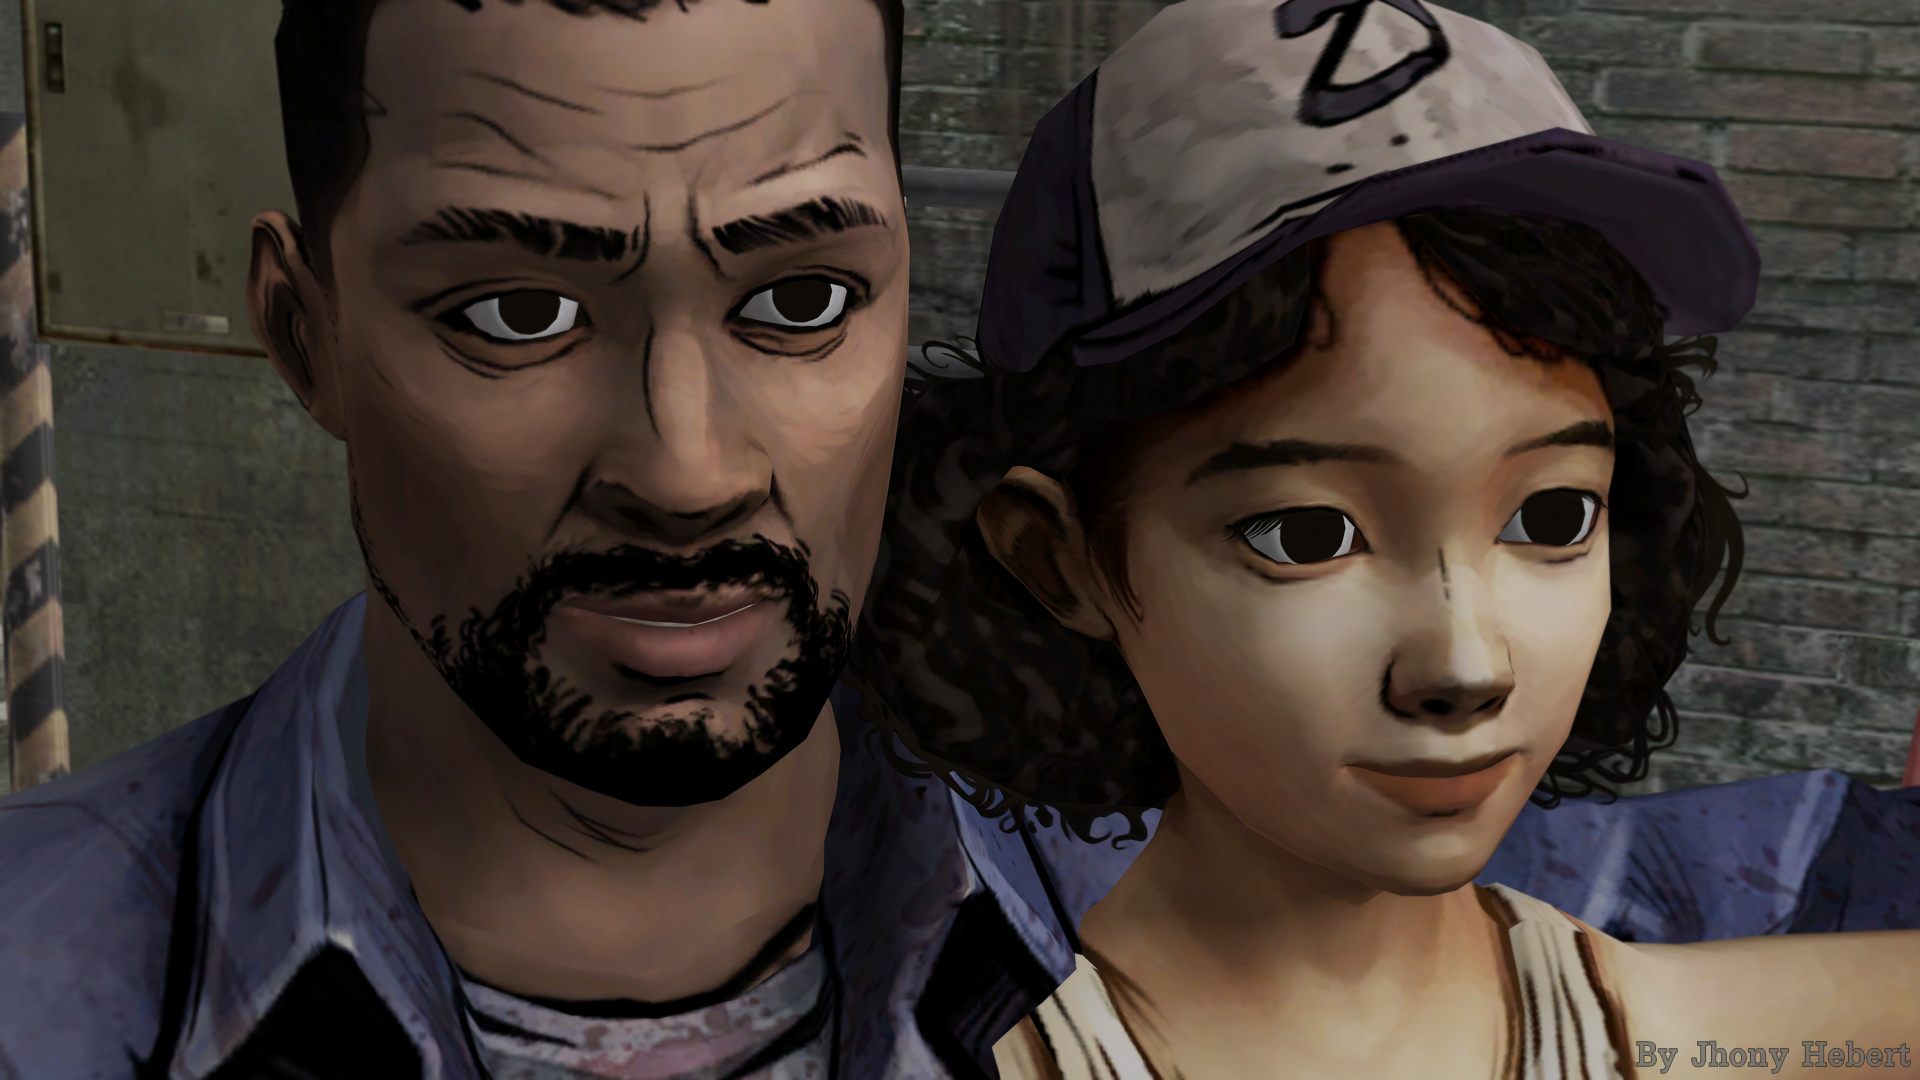 Lee and Clementine - The Walking Dead | The walking dead lee, The walking  dead, Clementine walking dead